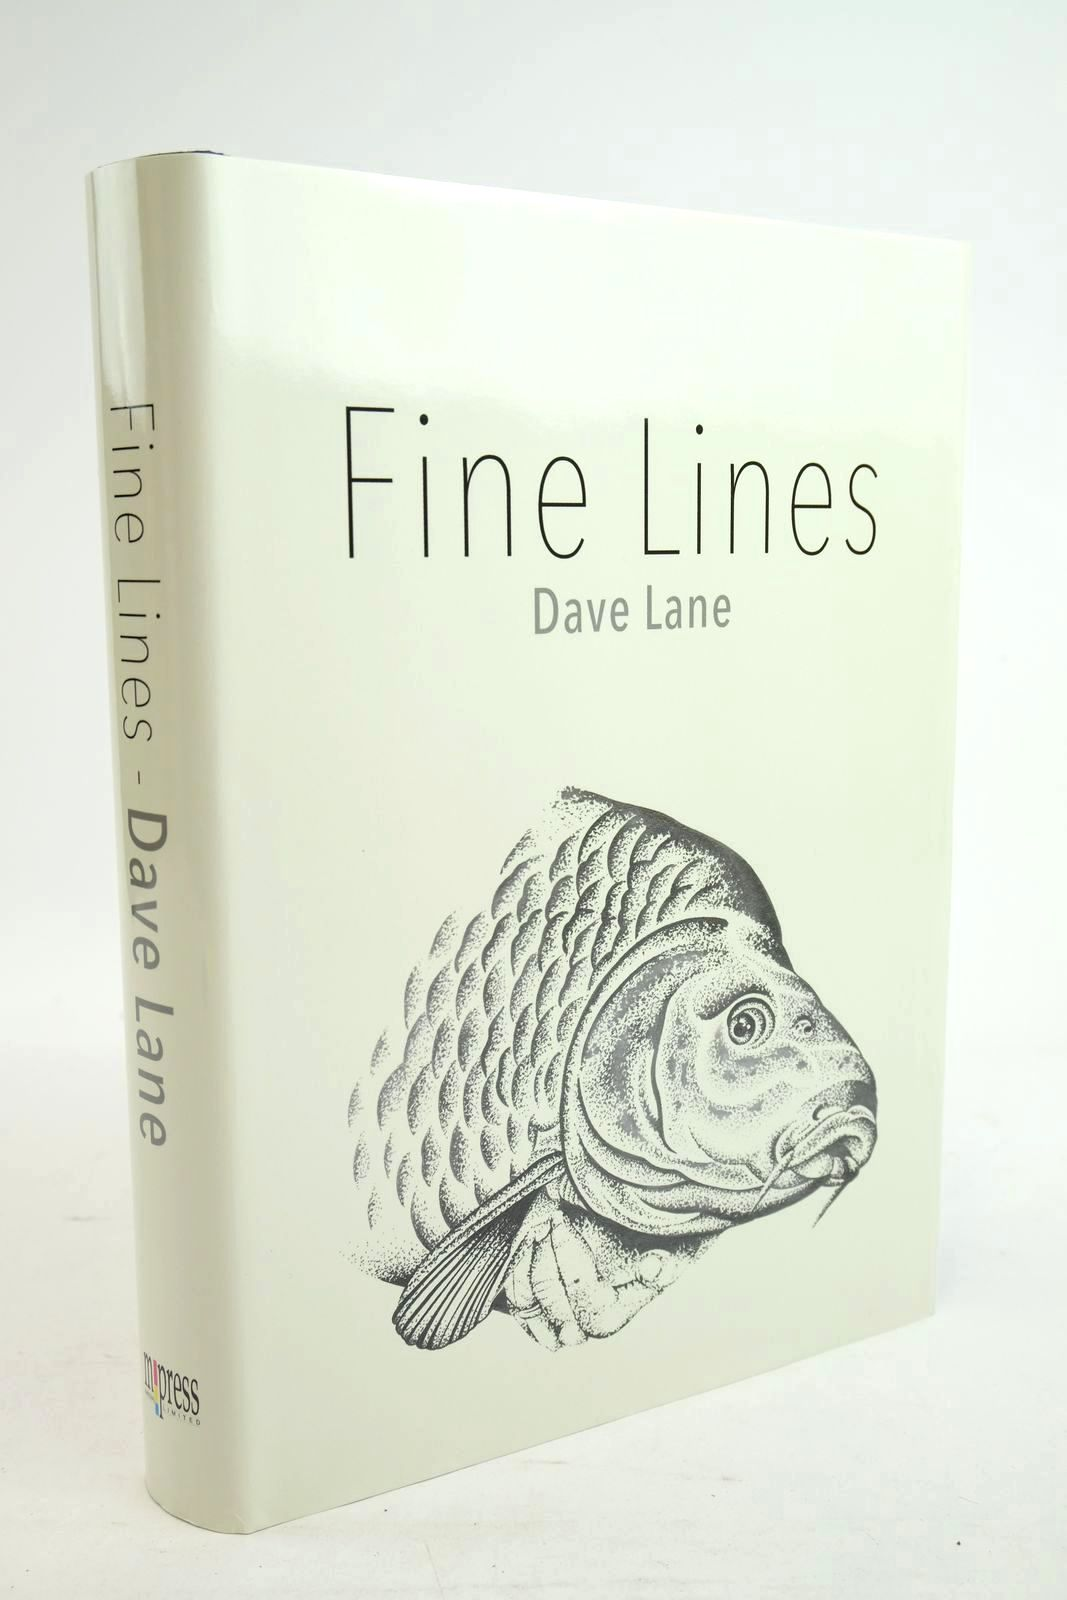 Photo of FINE LINES written by Lane, Dave published by Mpress (media) Limited (STOCK CODE: 1320066)  for sale by Stella & Rose's Books